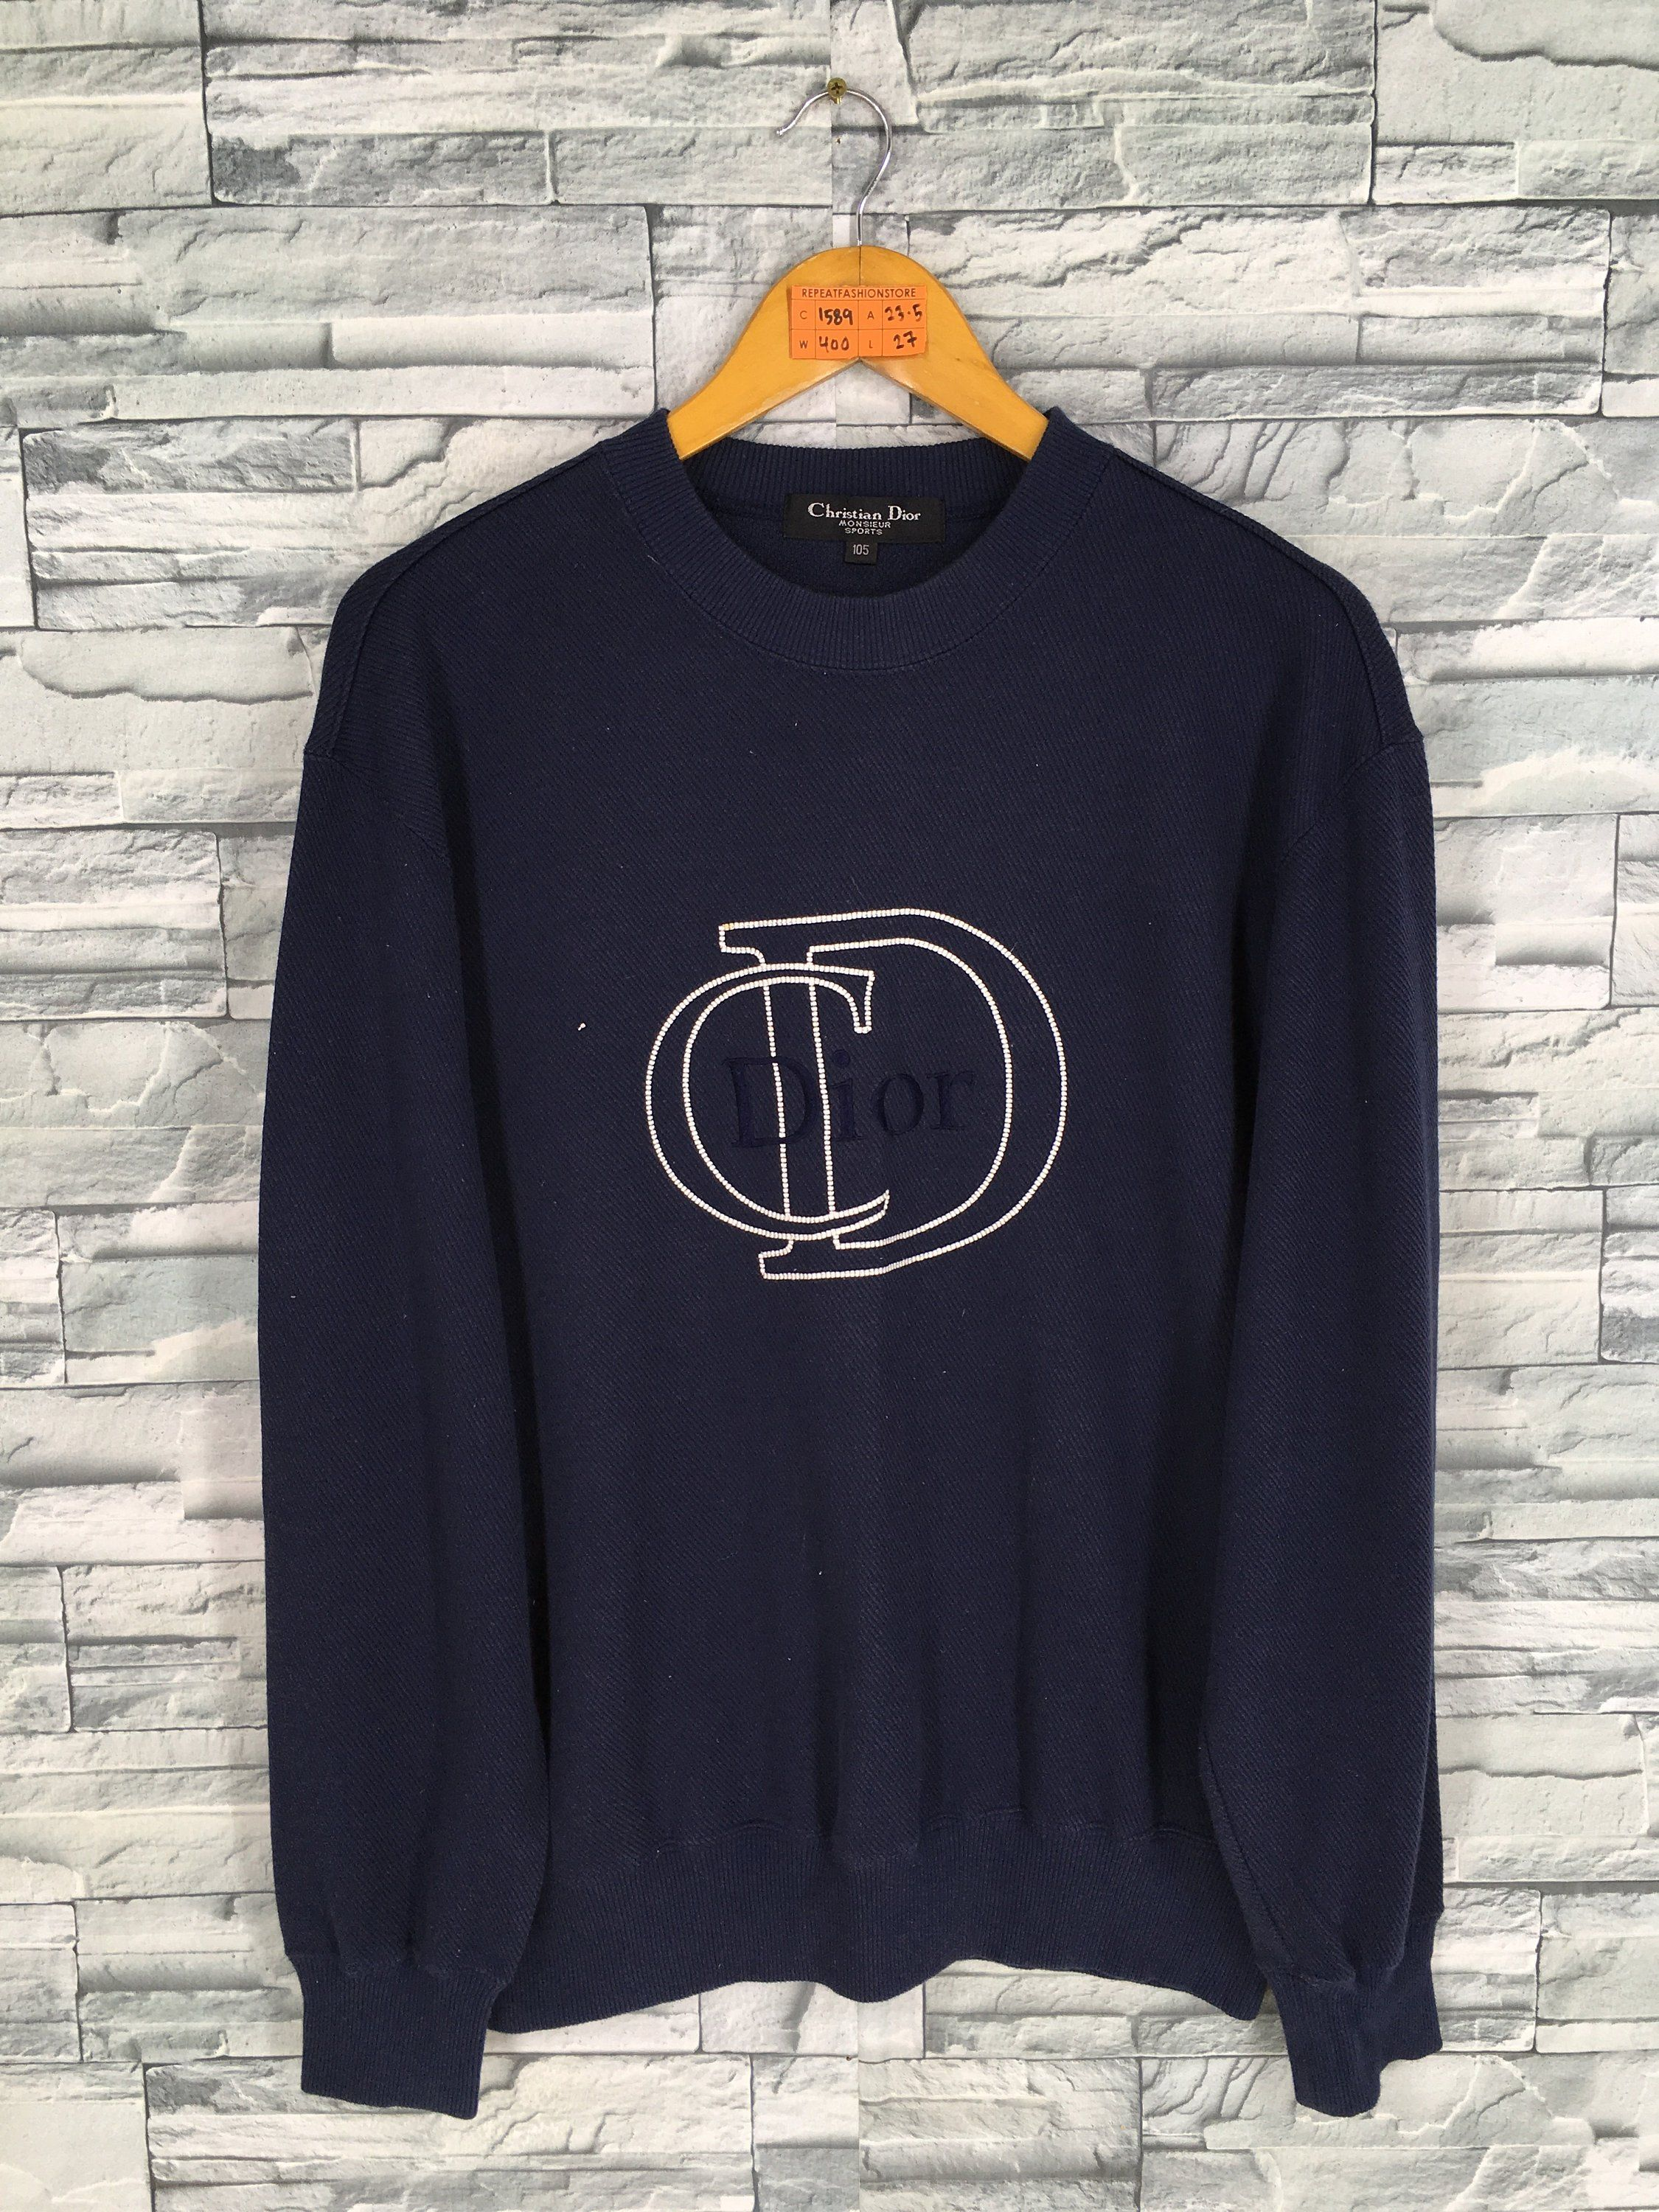 2b53d8ba Vintage 90's CHRISTIAN DIOR Pullover Jumper Medium Monsieur CD Dior  Designer Paris Sweater Blue Dior Big Logo Crewneck Sweatshirt Size M by ...